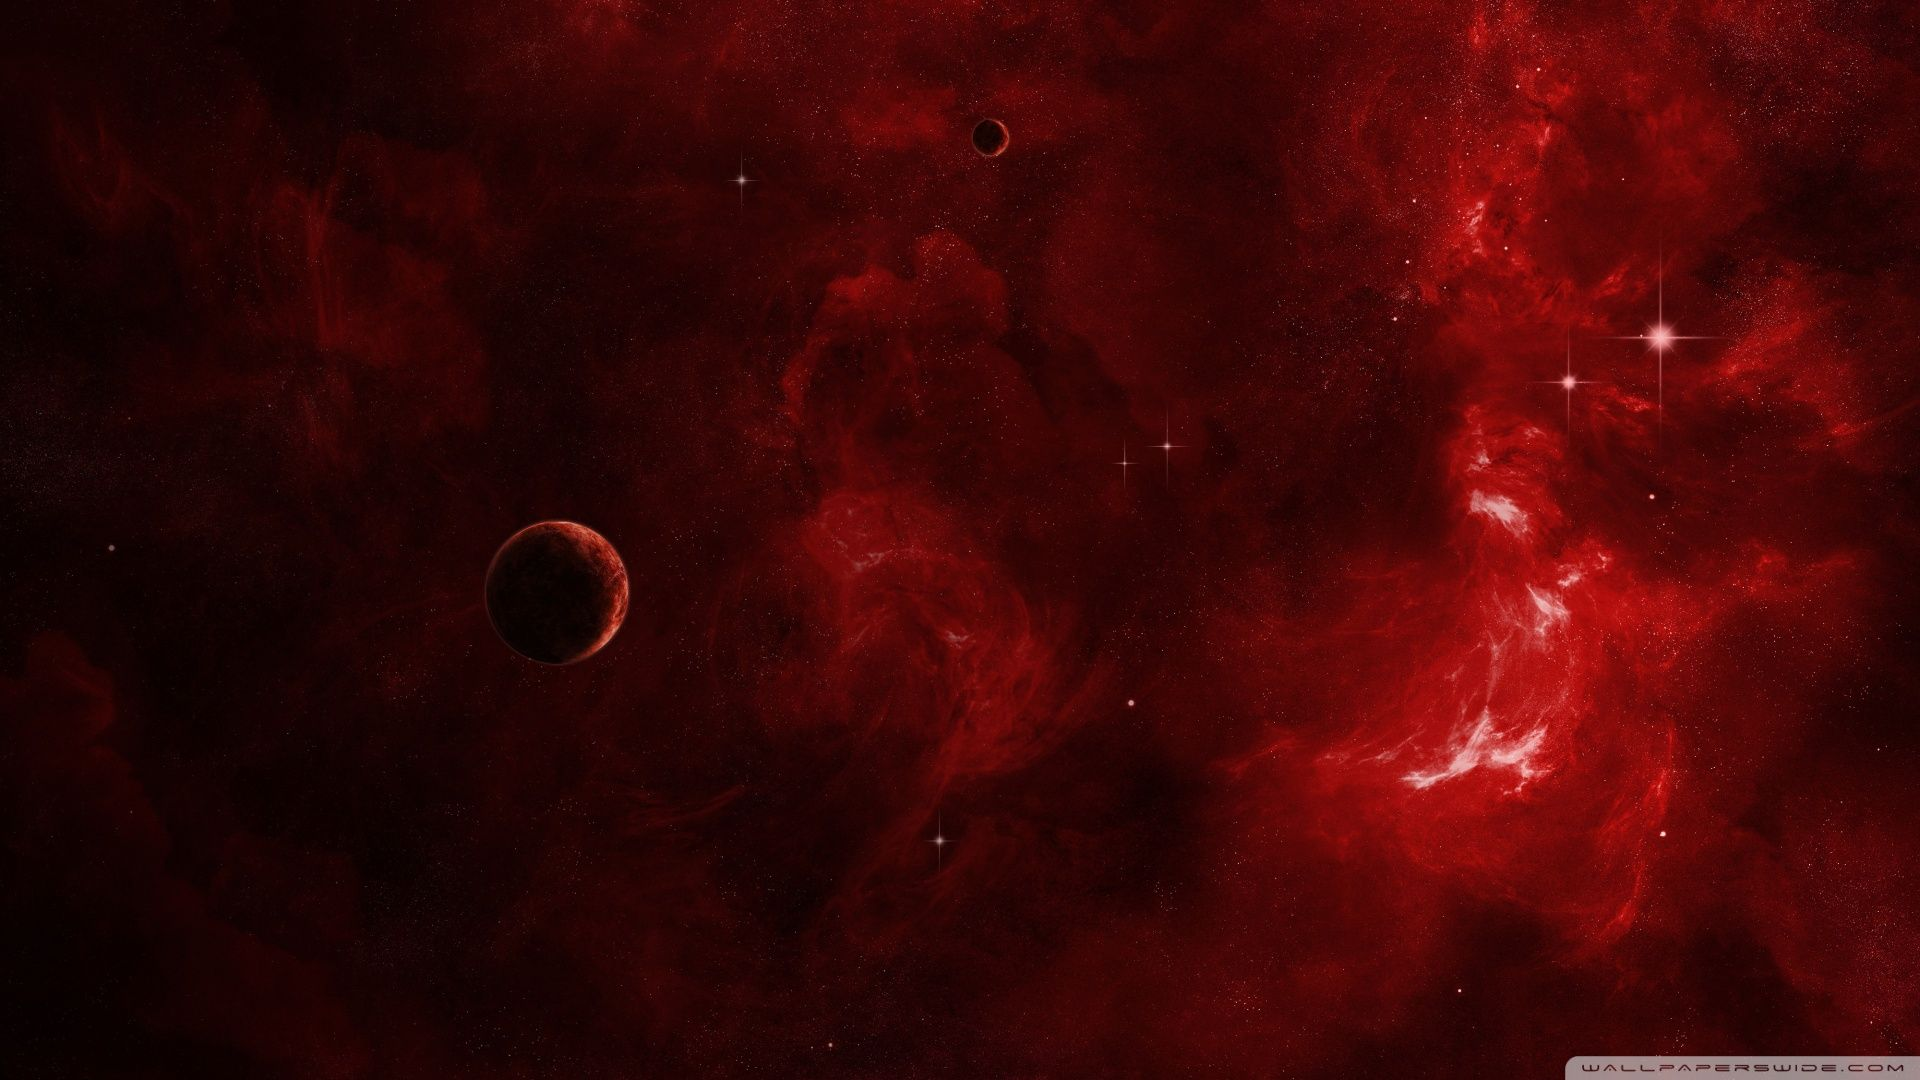 Red Nebula Wallpaper Hd 2020 Live Wallpaper Hd Nebula Wallpaper Htc Wallpaper Red Wallpaper